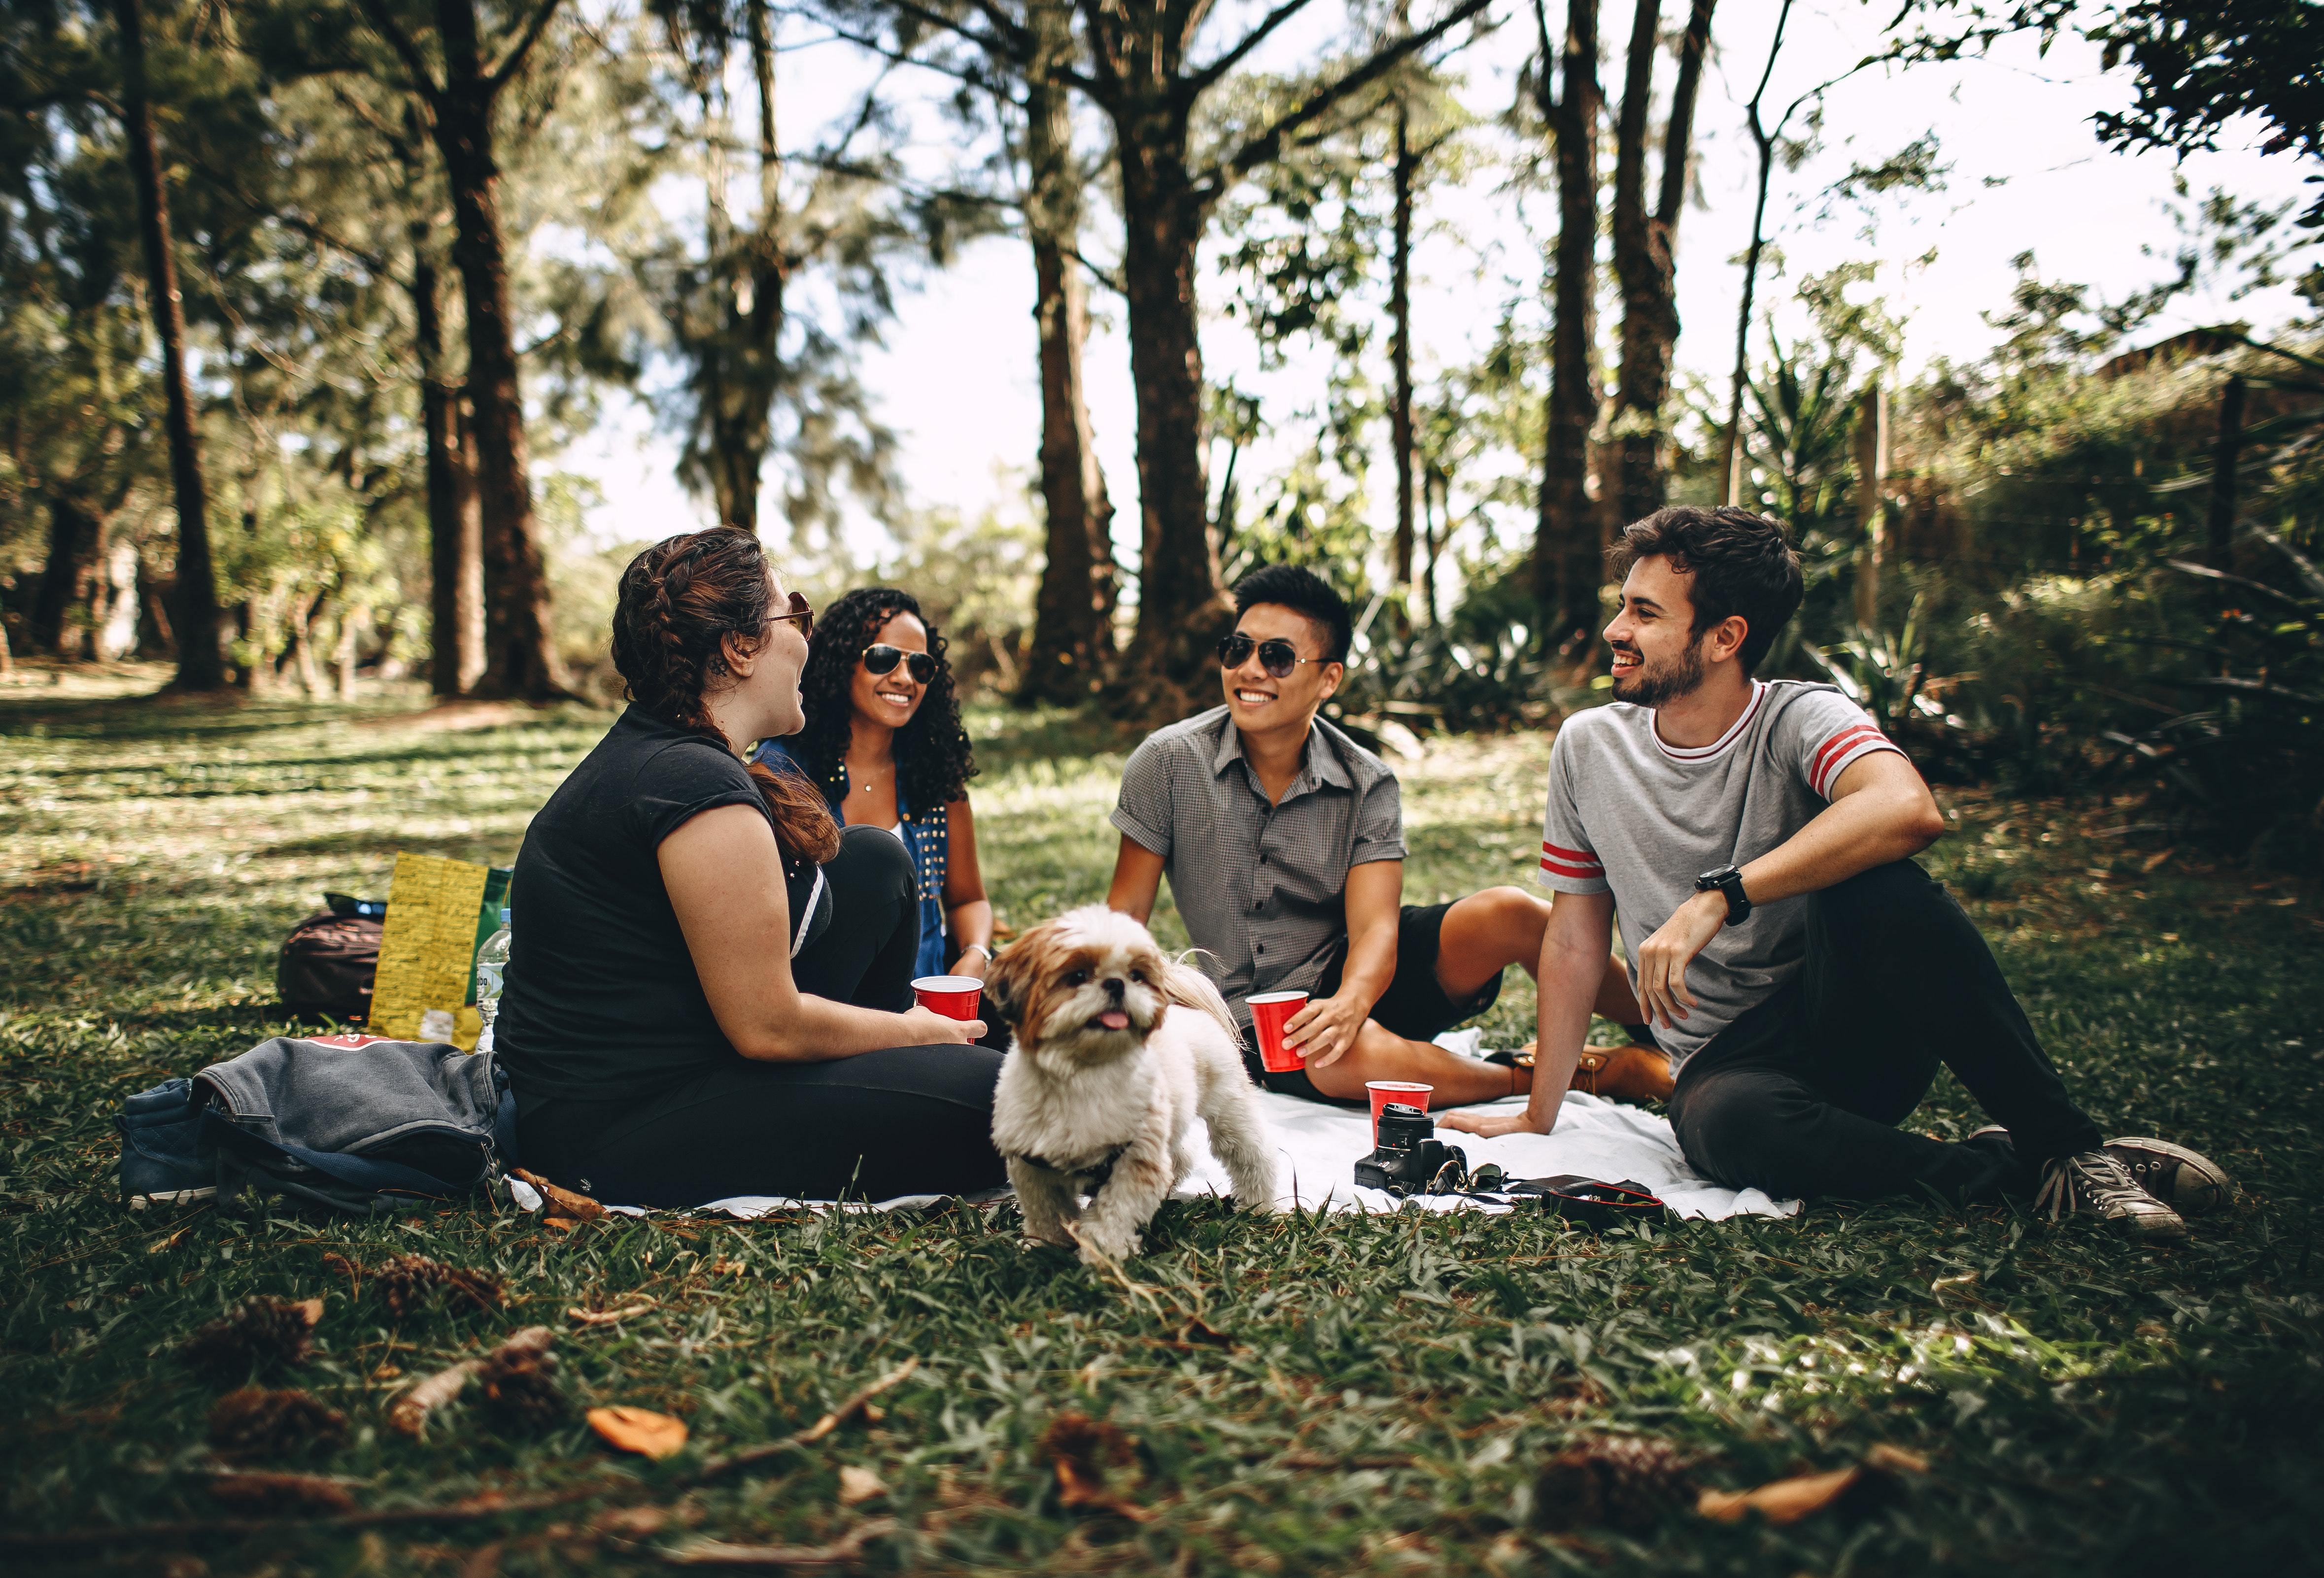 Community Shattered To Realize Someone Just Brought Tortilla Chips To The Picnic